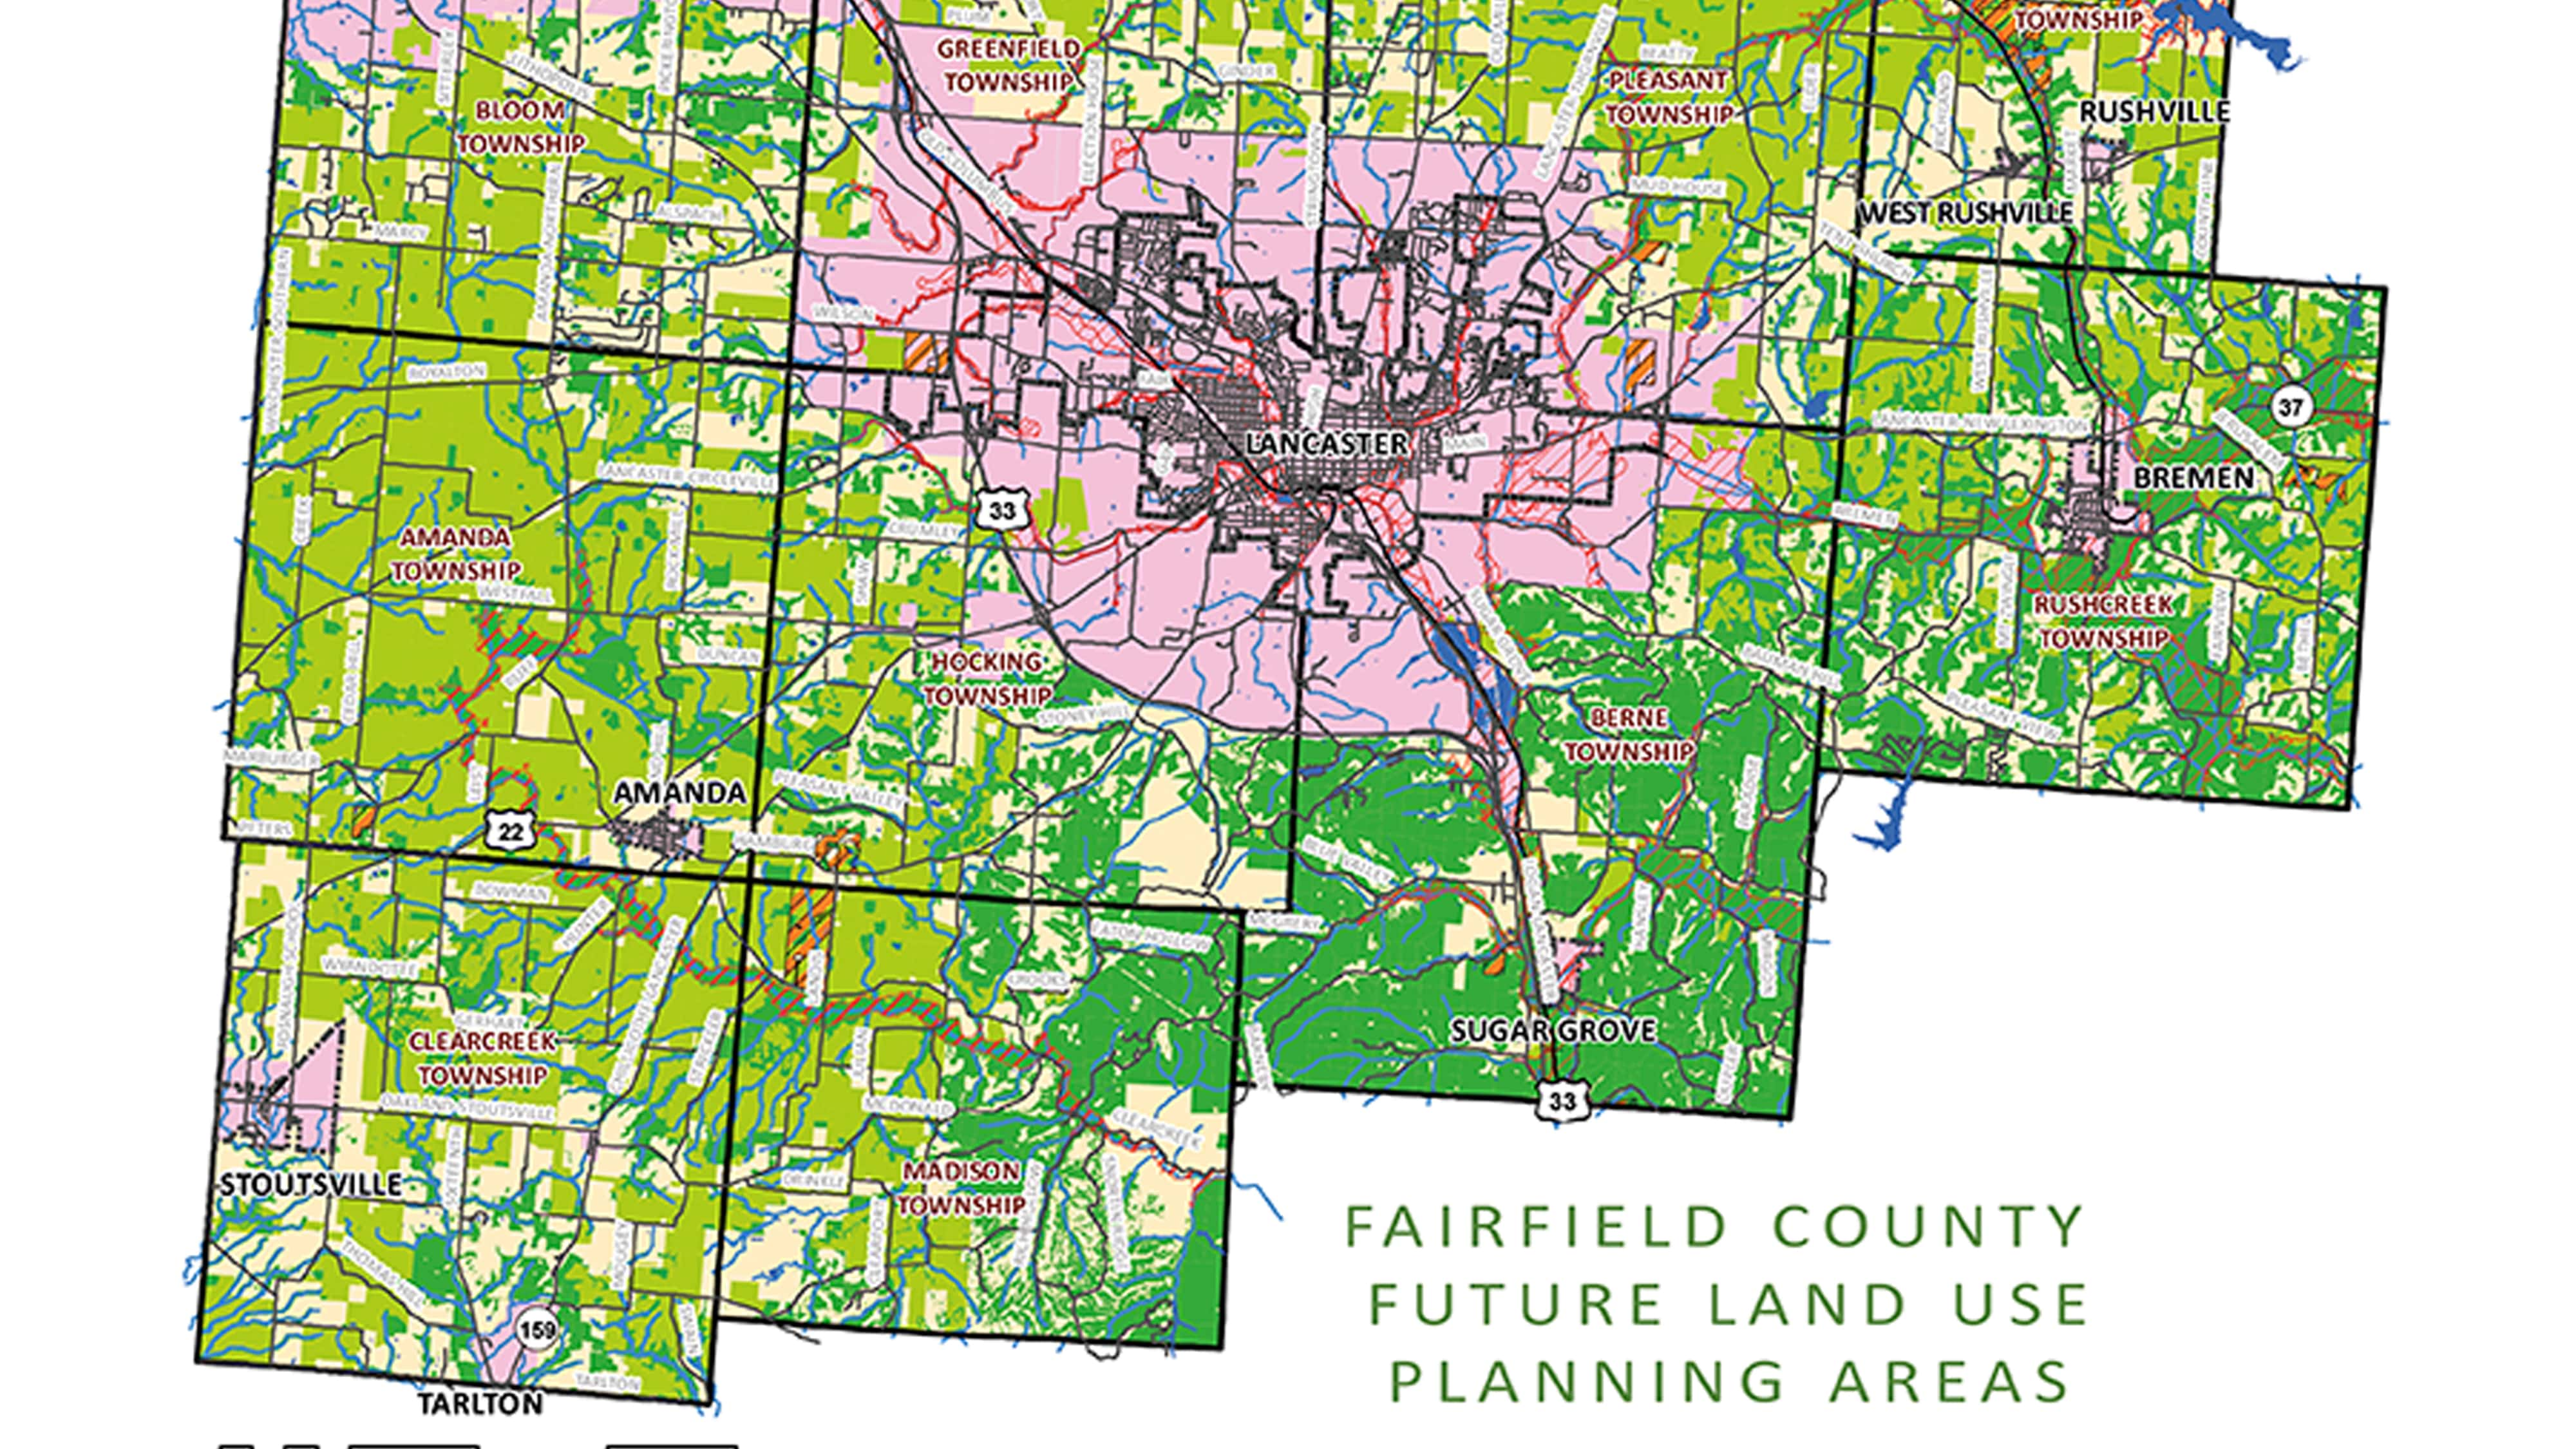 Fairfield_County_Preview-min